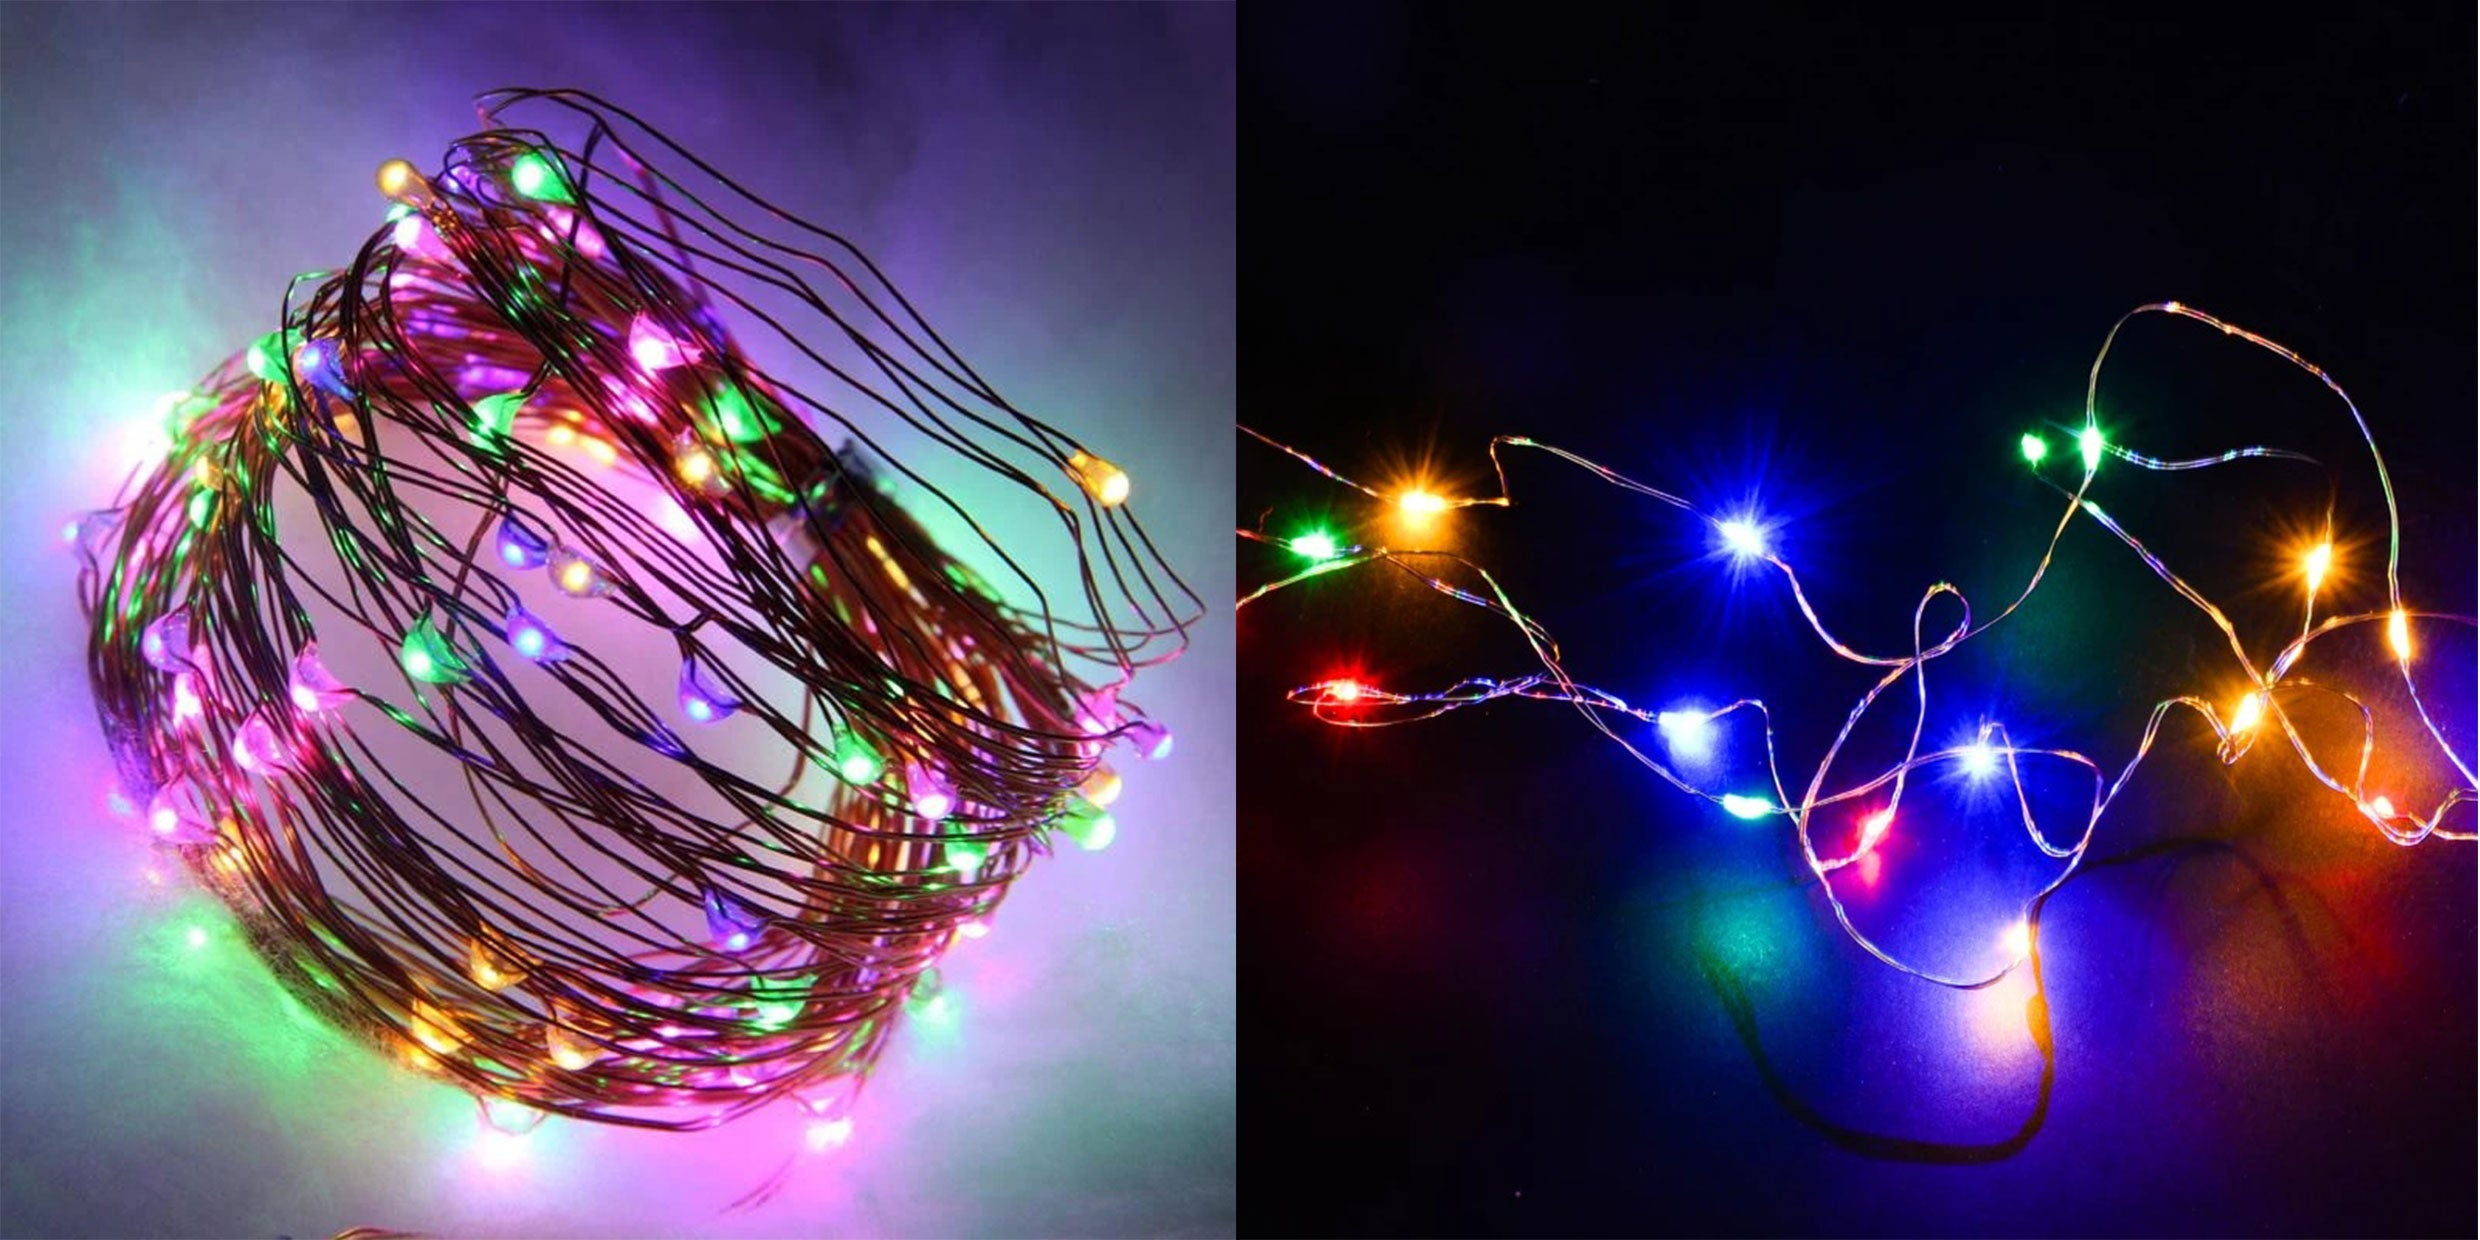 Garden Party Decorations LED Waterproof Copper String Lights